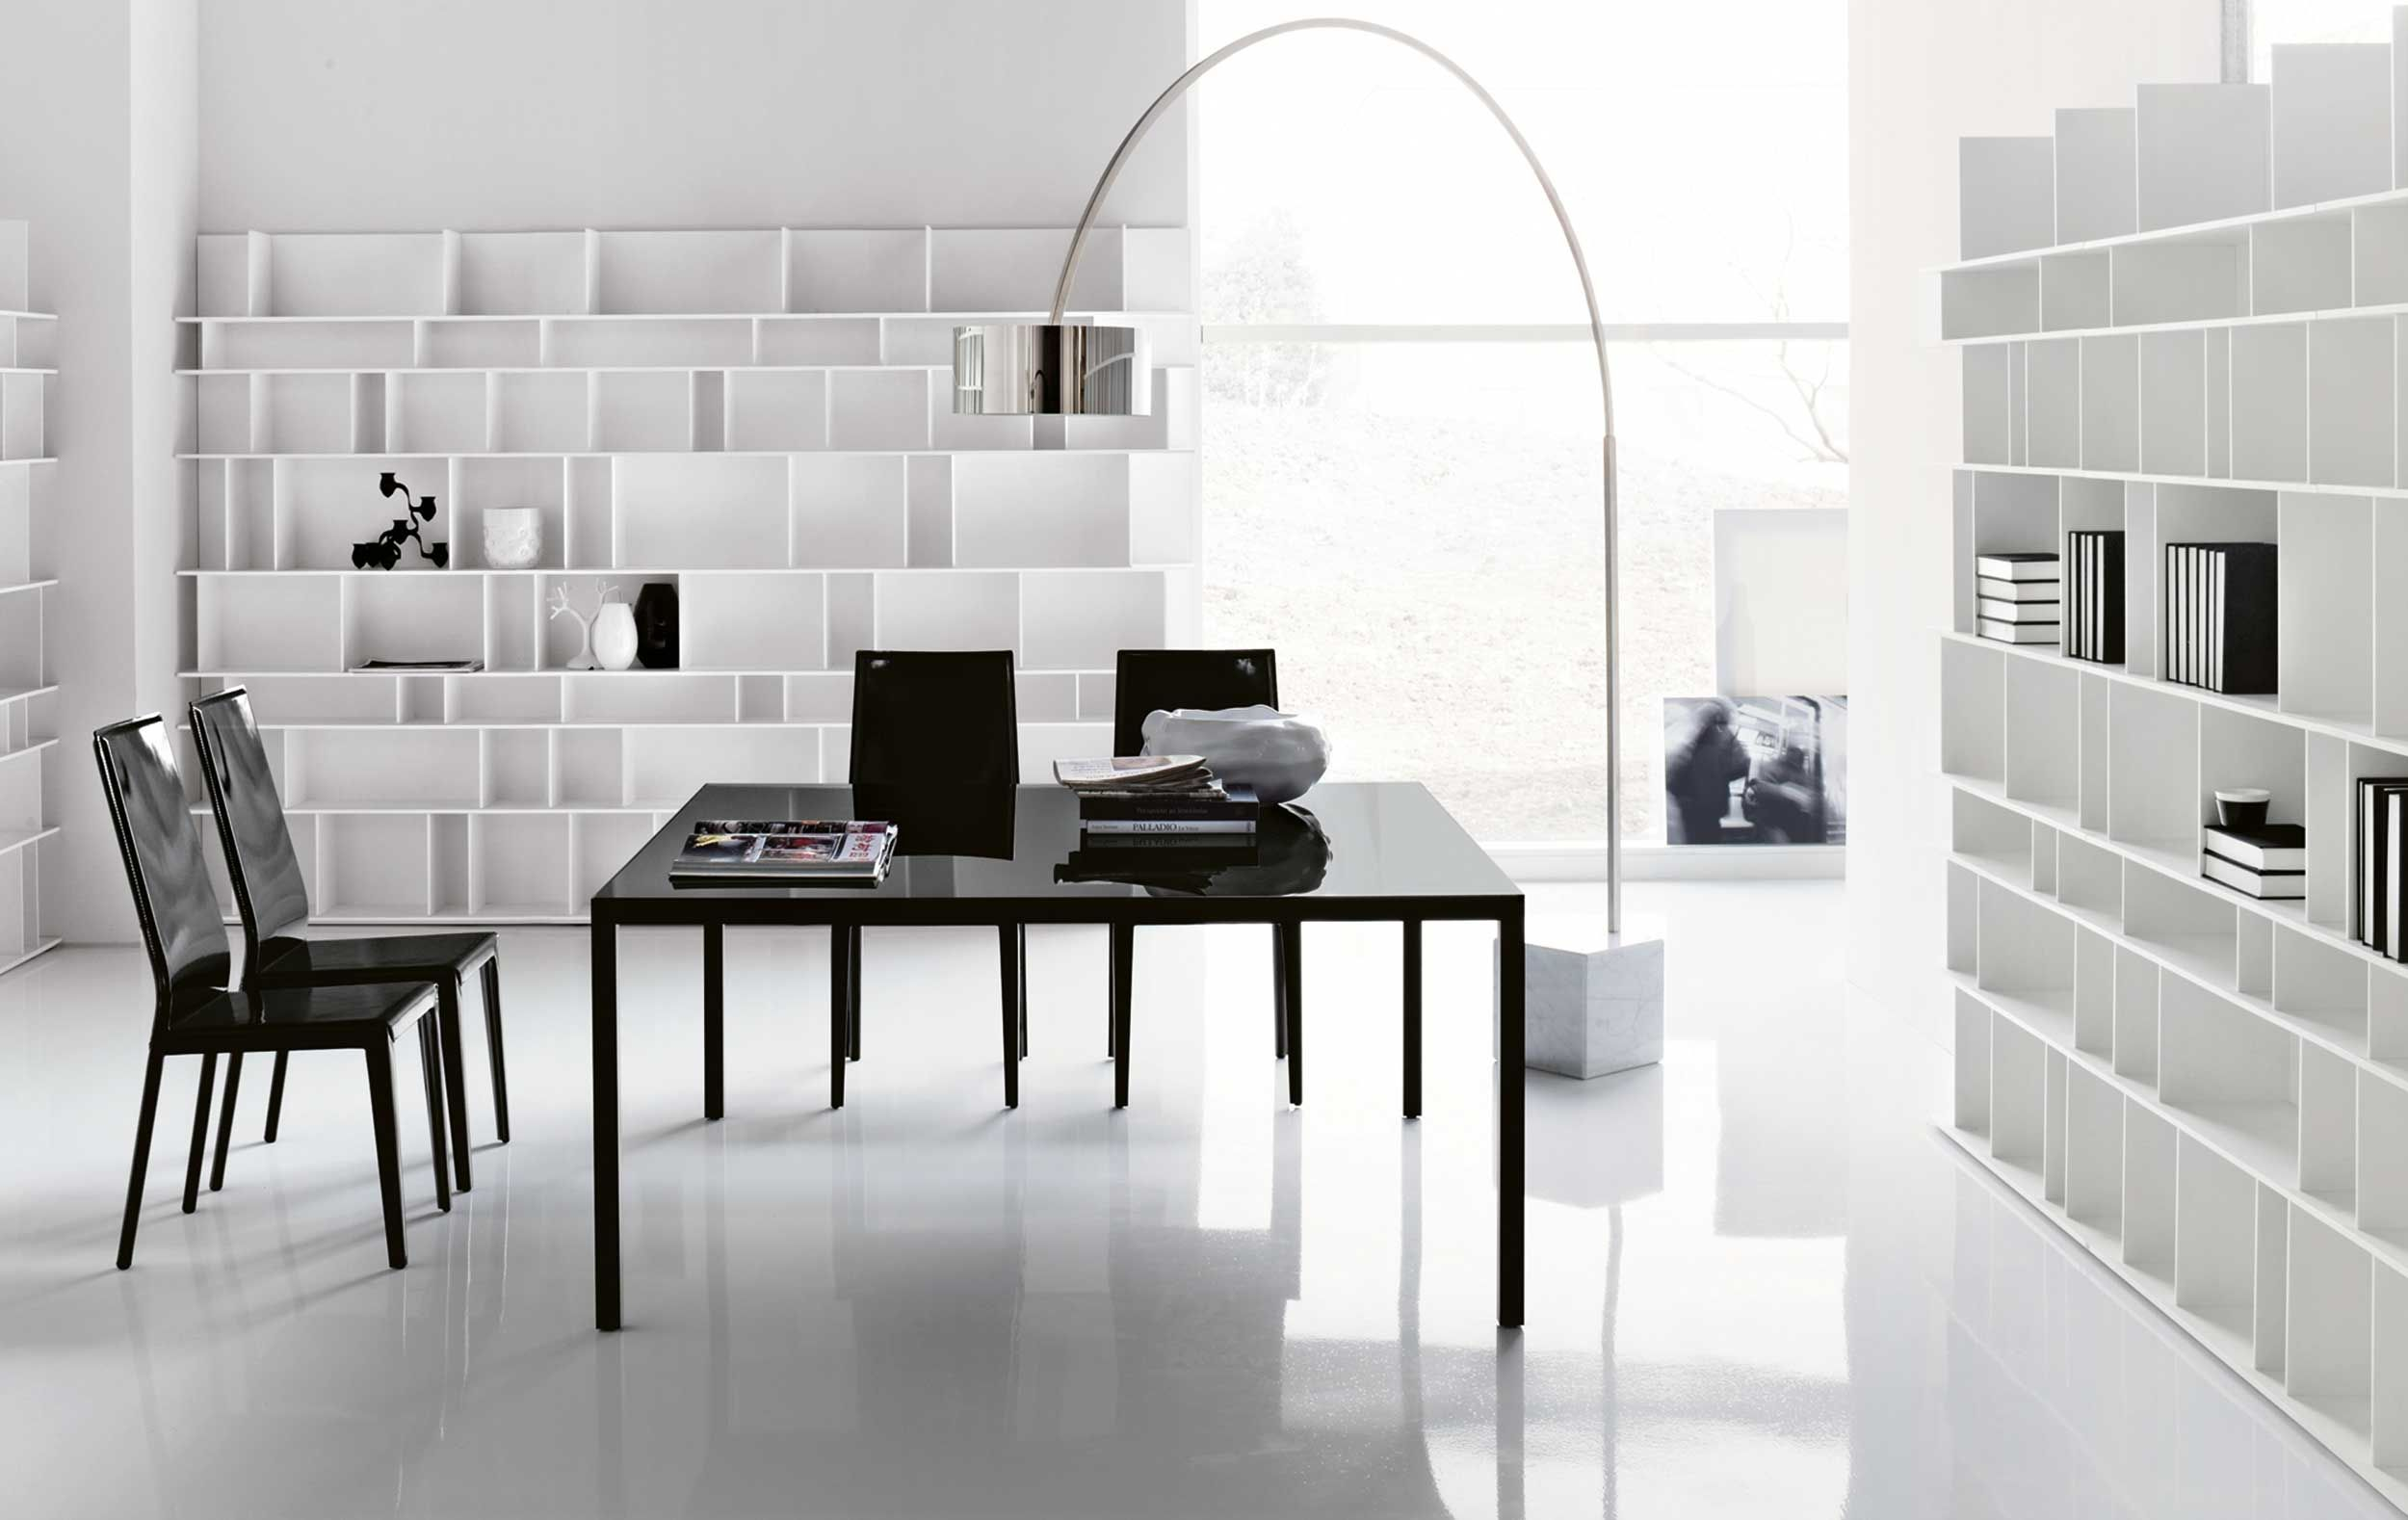 Phenomenal 17 Best Images About Office Designs On Pinterest Home Office Largest Home Design Picture Inspirations Pitcheantrous